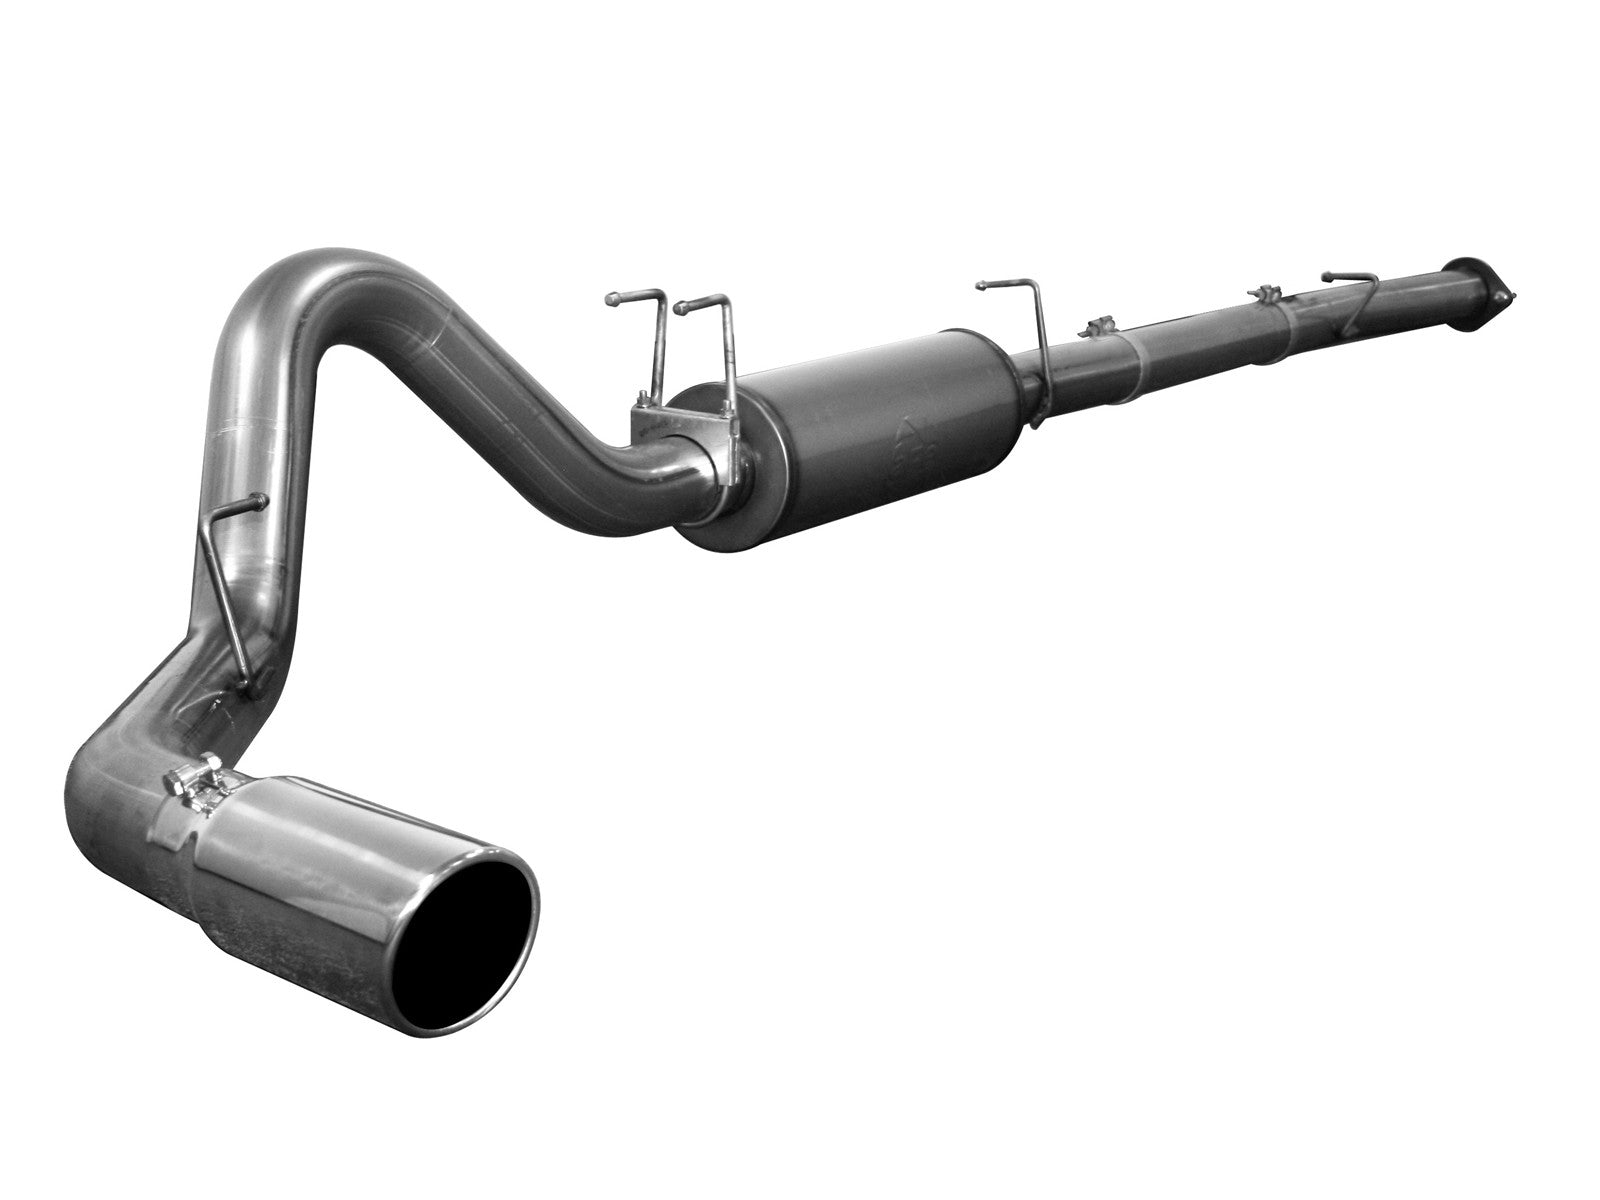 "AFE Power Large Bore-HD 4"" Downpipe Back Stainless Steel Exhaust System - Northwest Diesel"